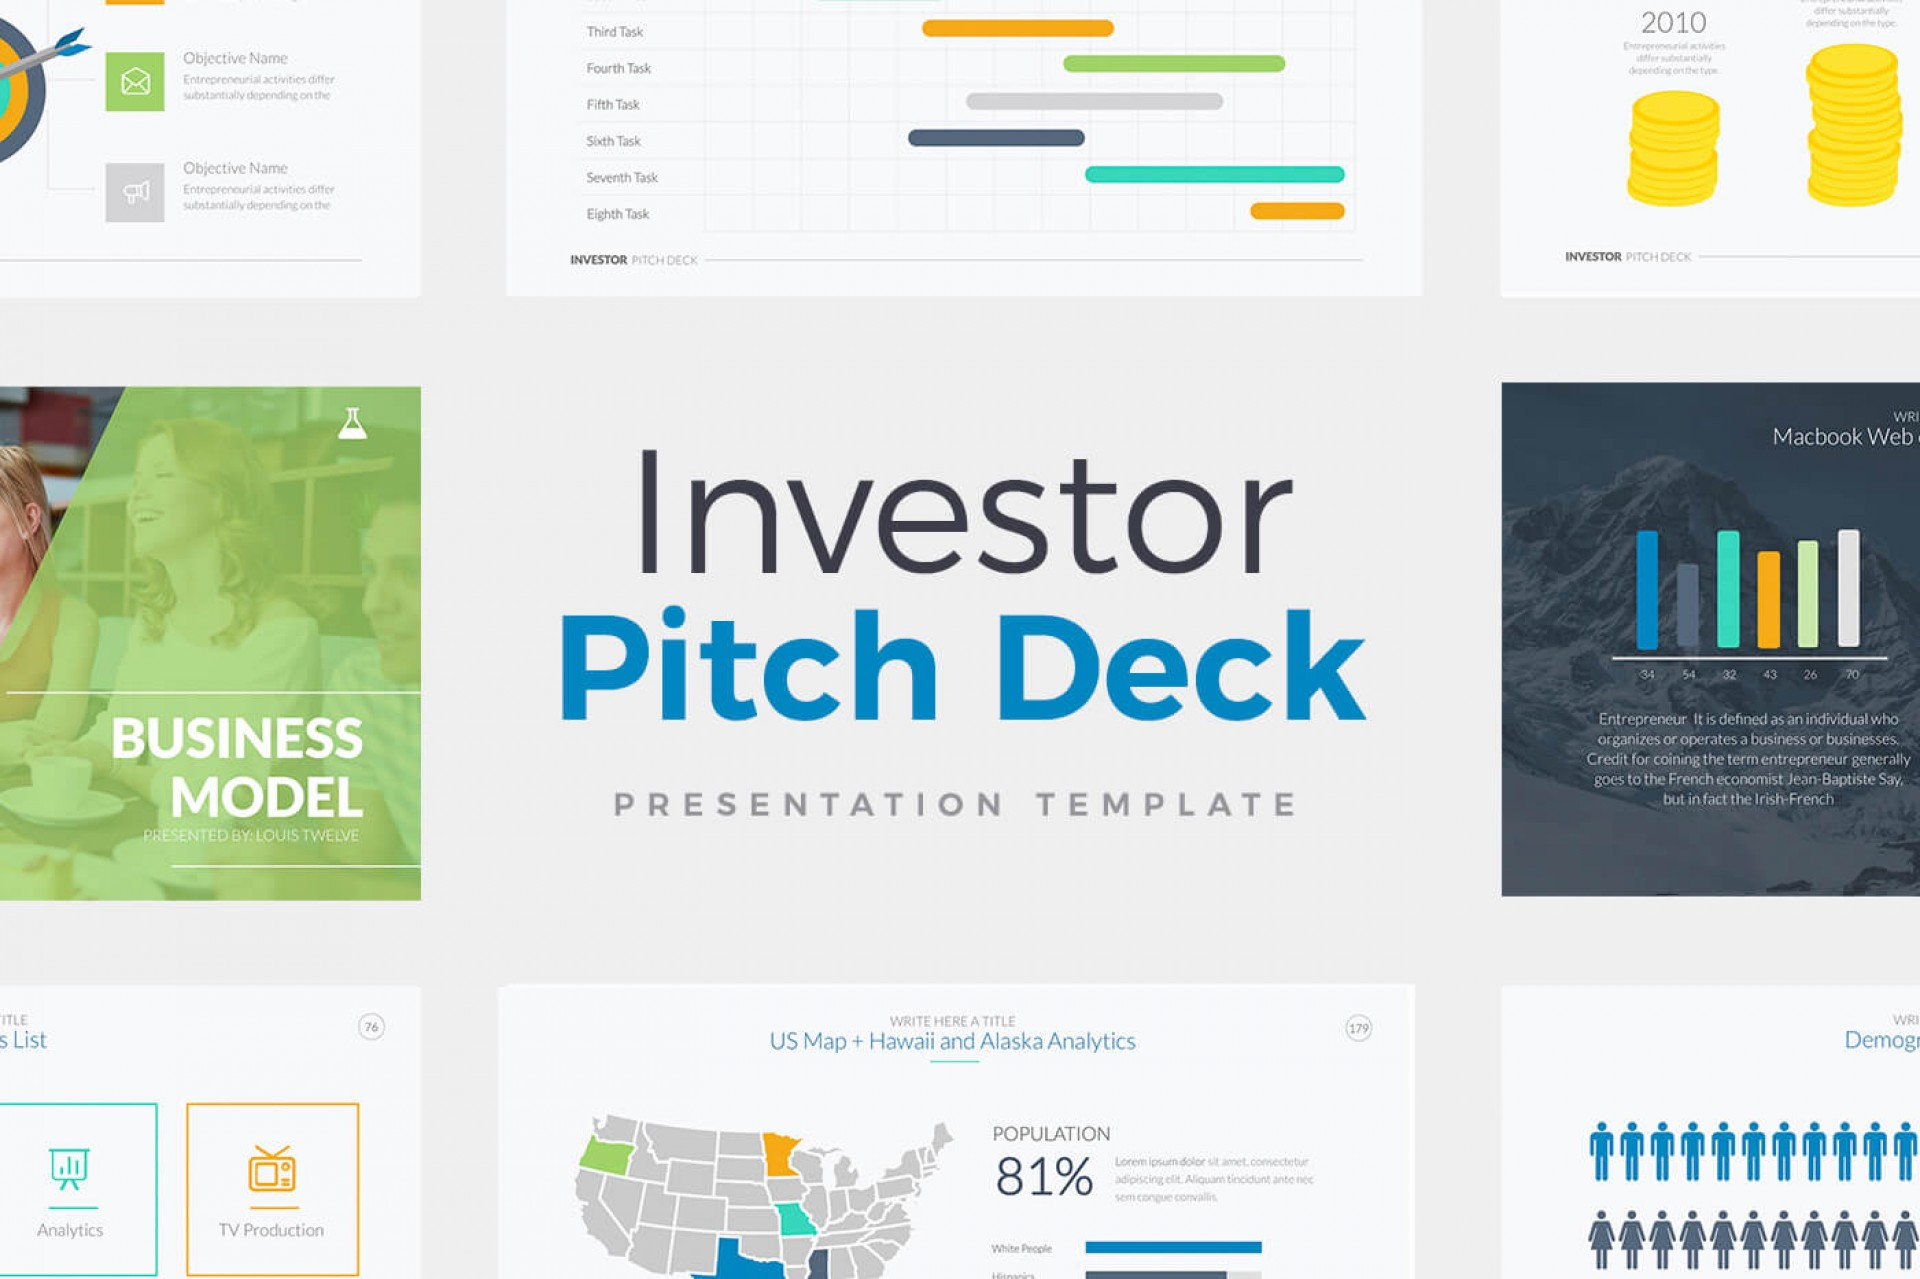 Investor Pitch Deck Template Free Download